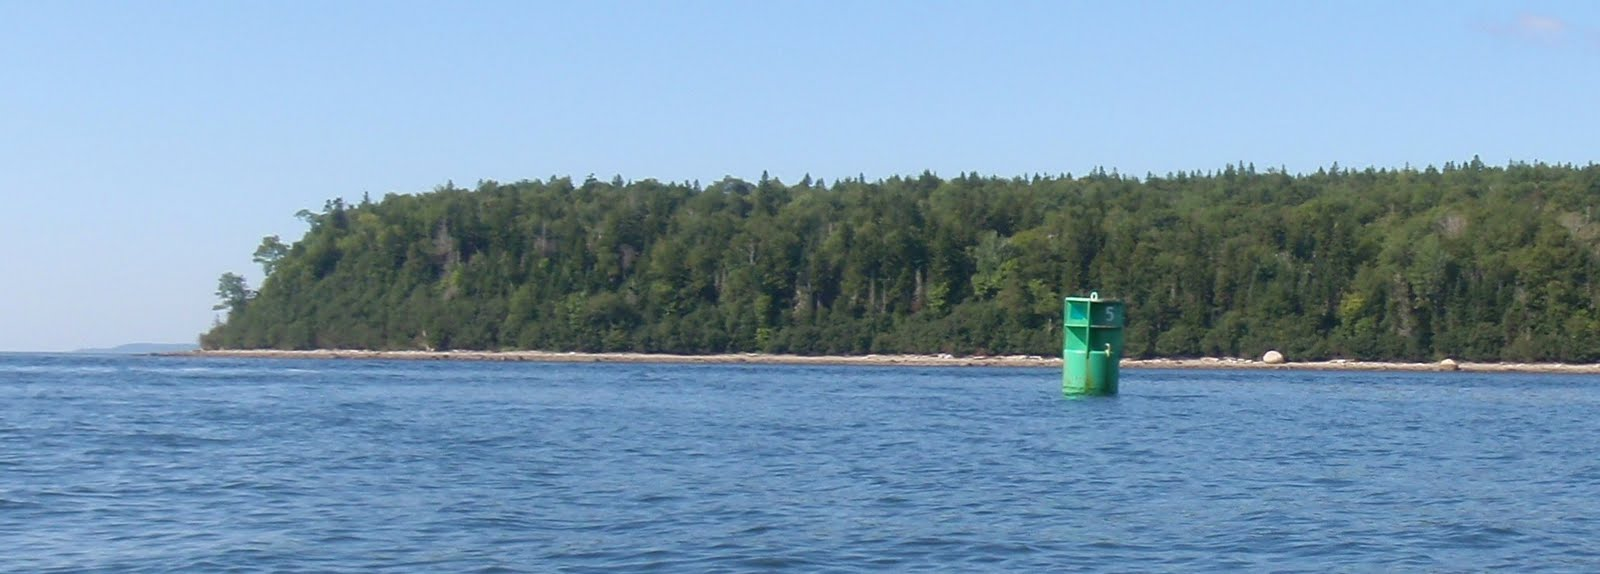 Penobscotpaddles stockton springs to sears island me bunch obirds if we land at the erratic on sears island which in line with the green can we can often find sand dollar husks but only at the lowest tides geenschuldenfo Image collections